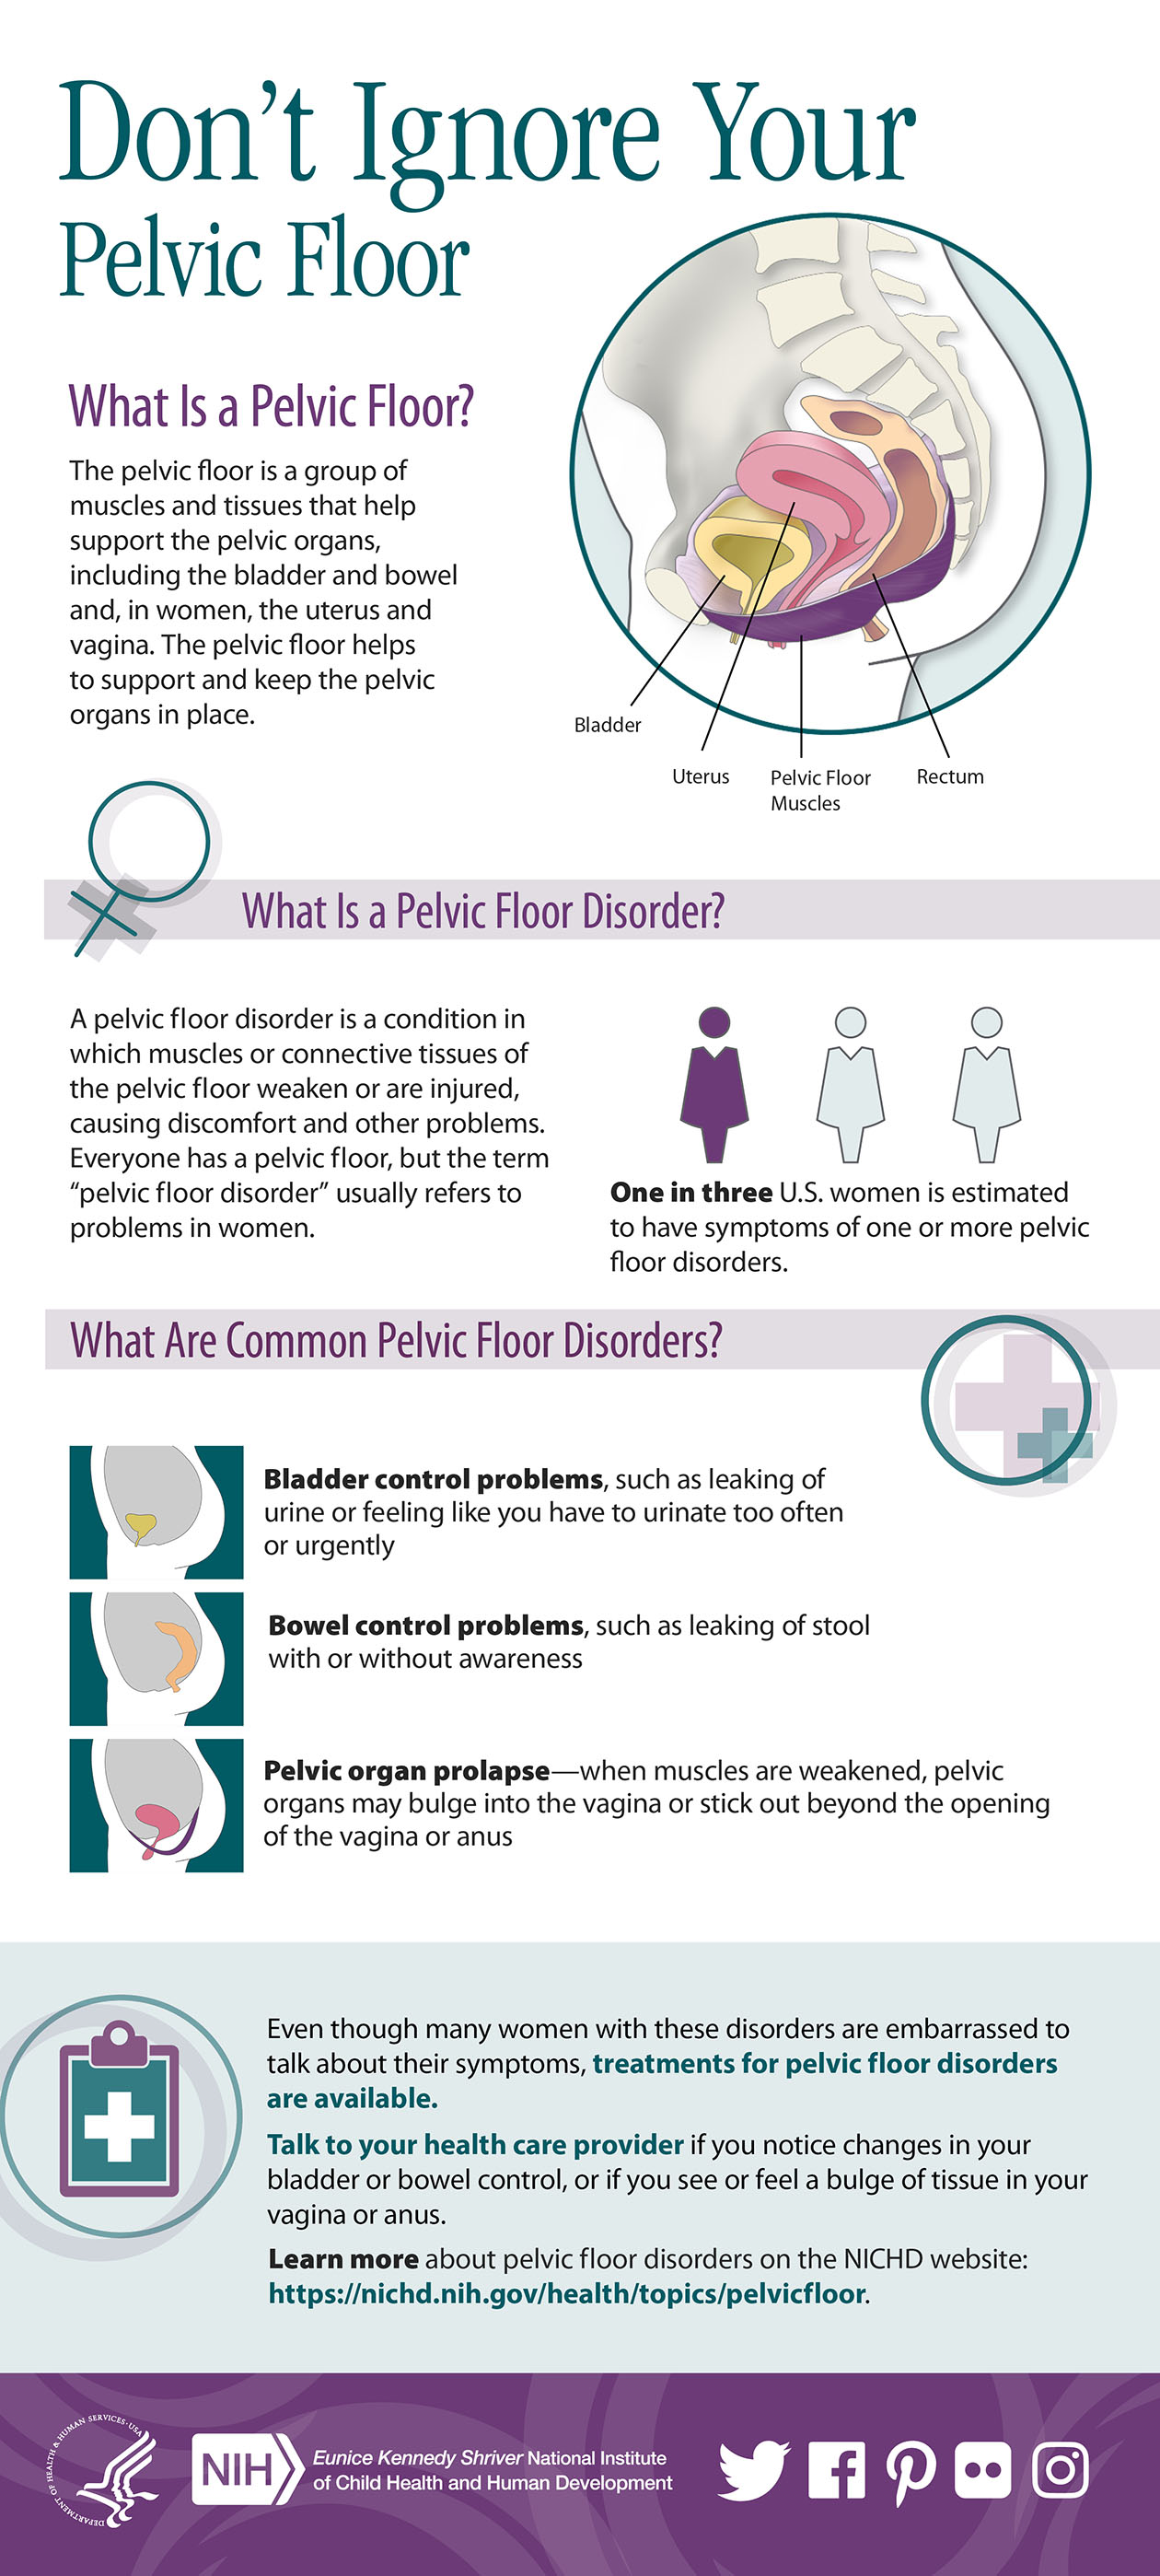 Don't Ignore Your Pelvic Floor